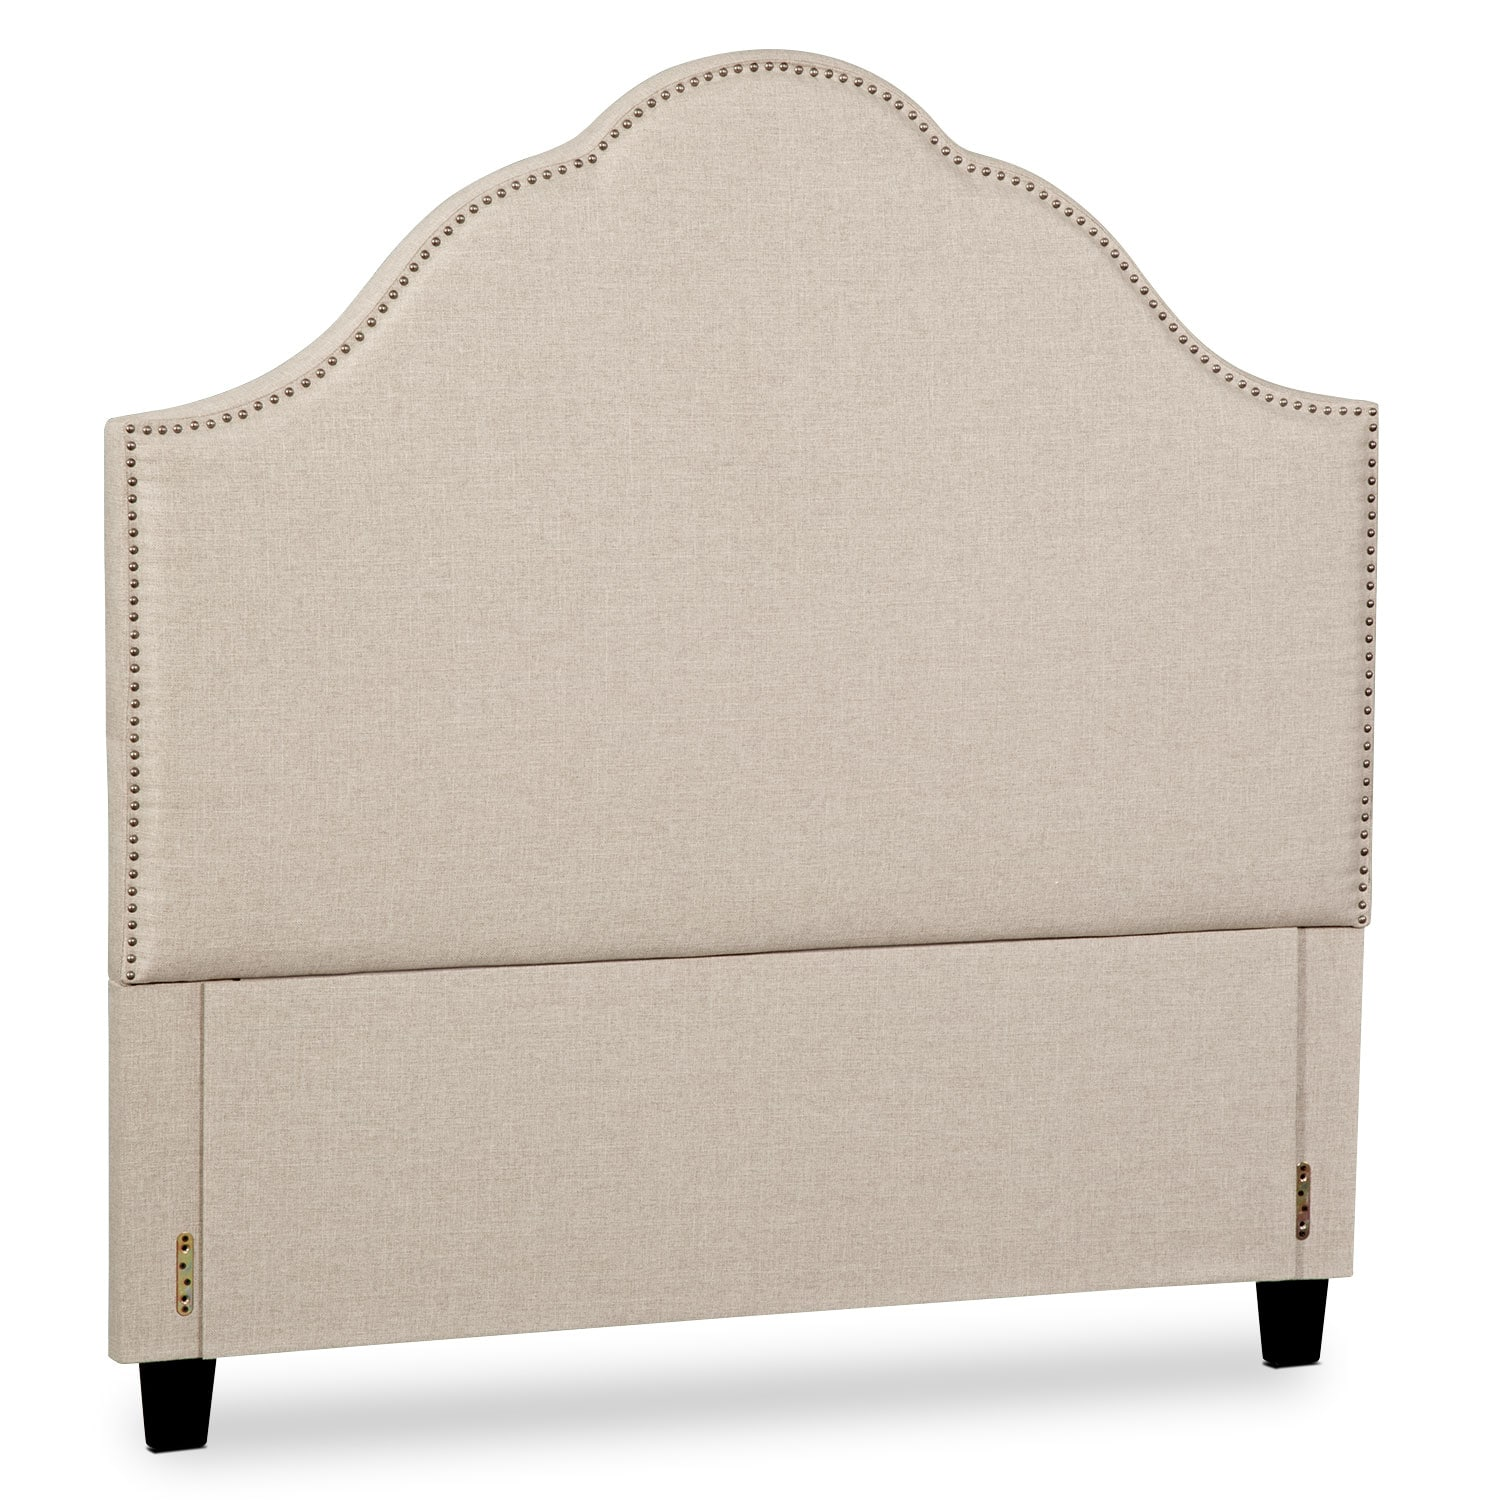 Maya Queen Upholstered Headboard - Beige